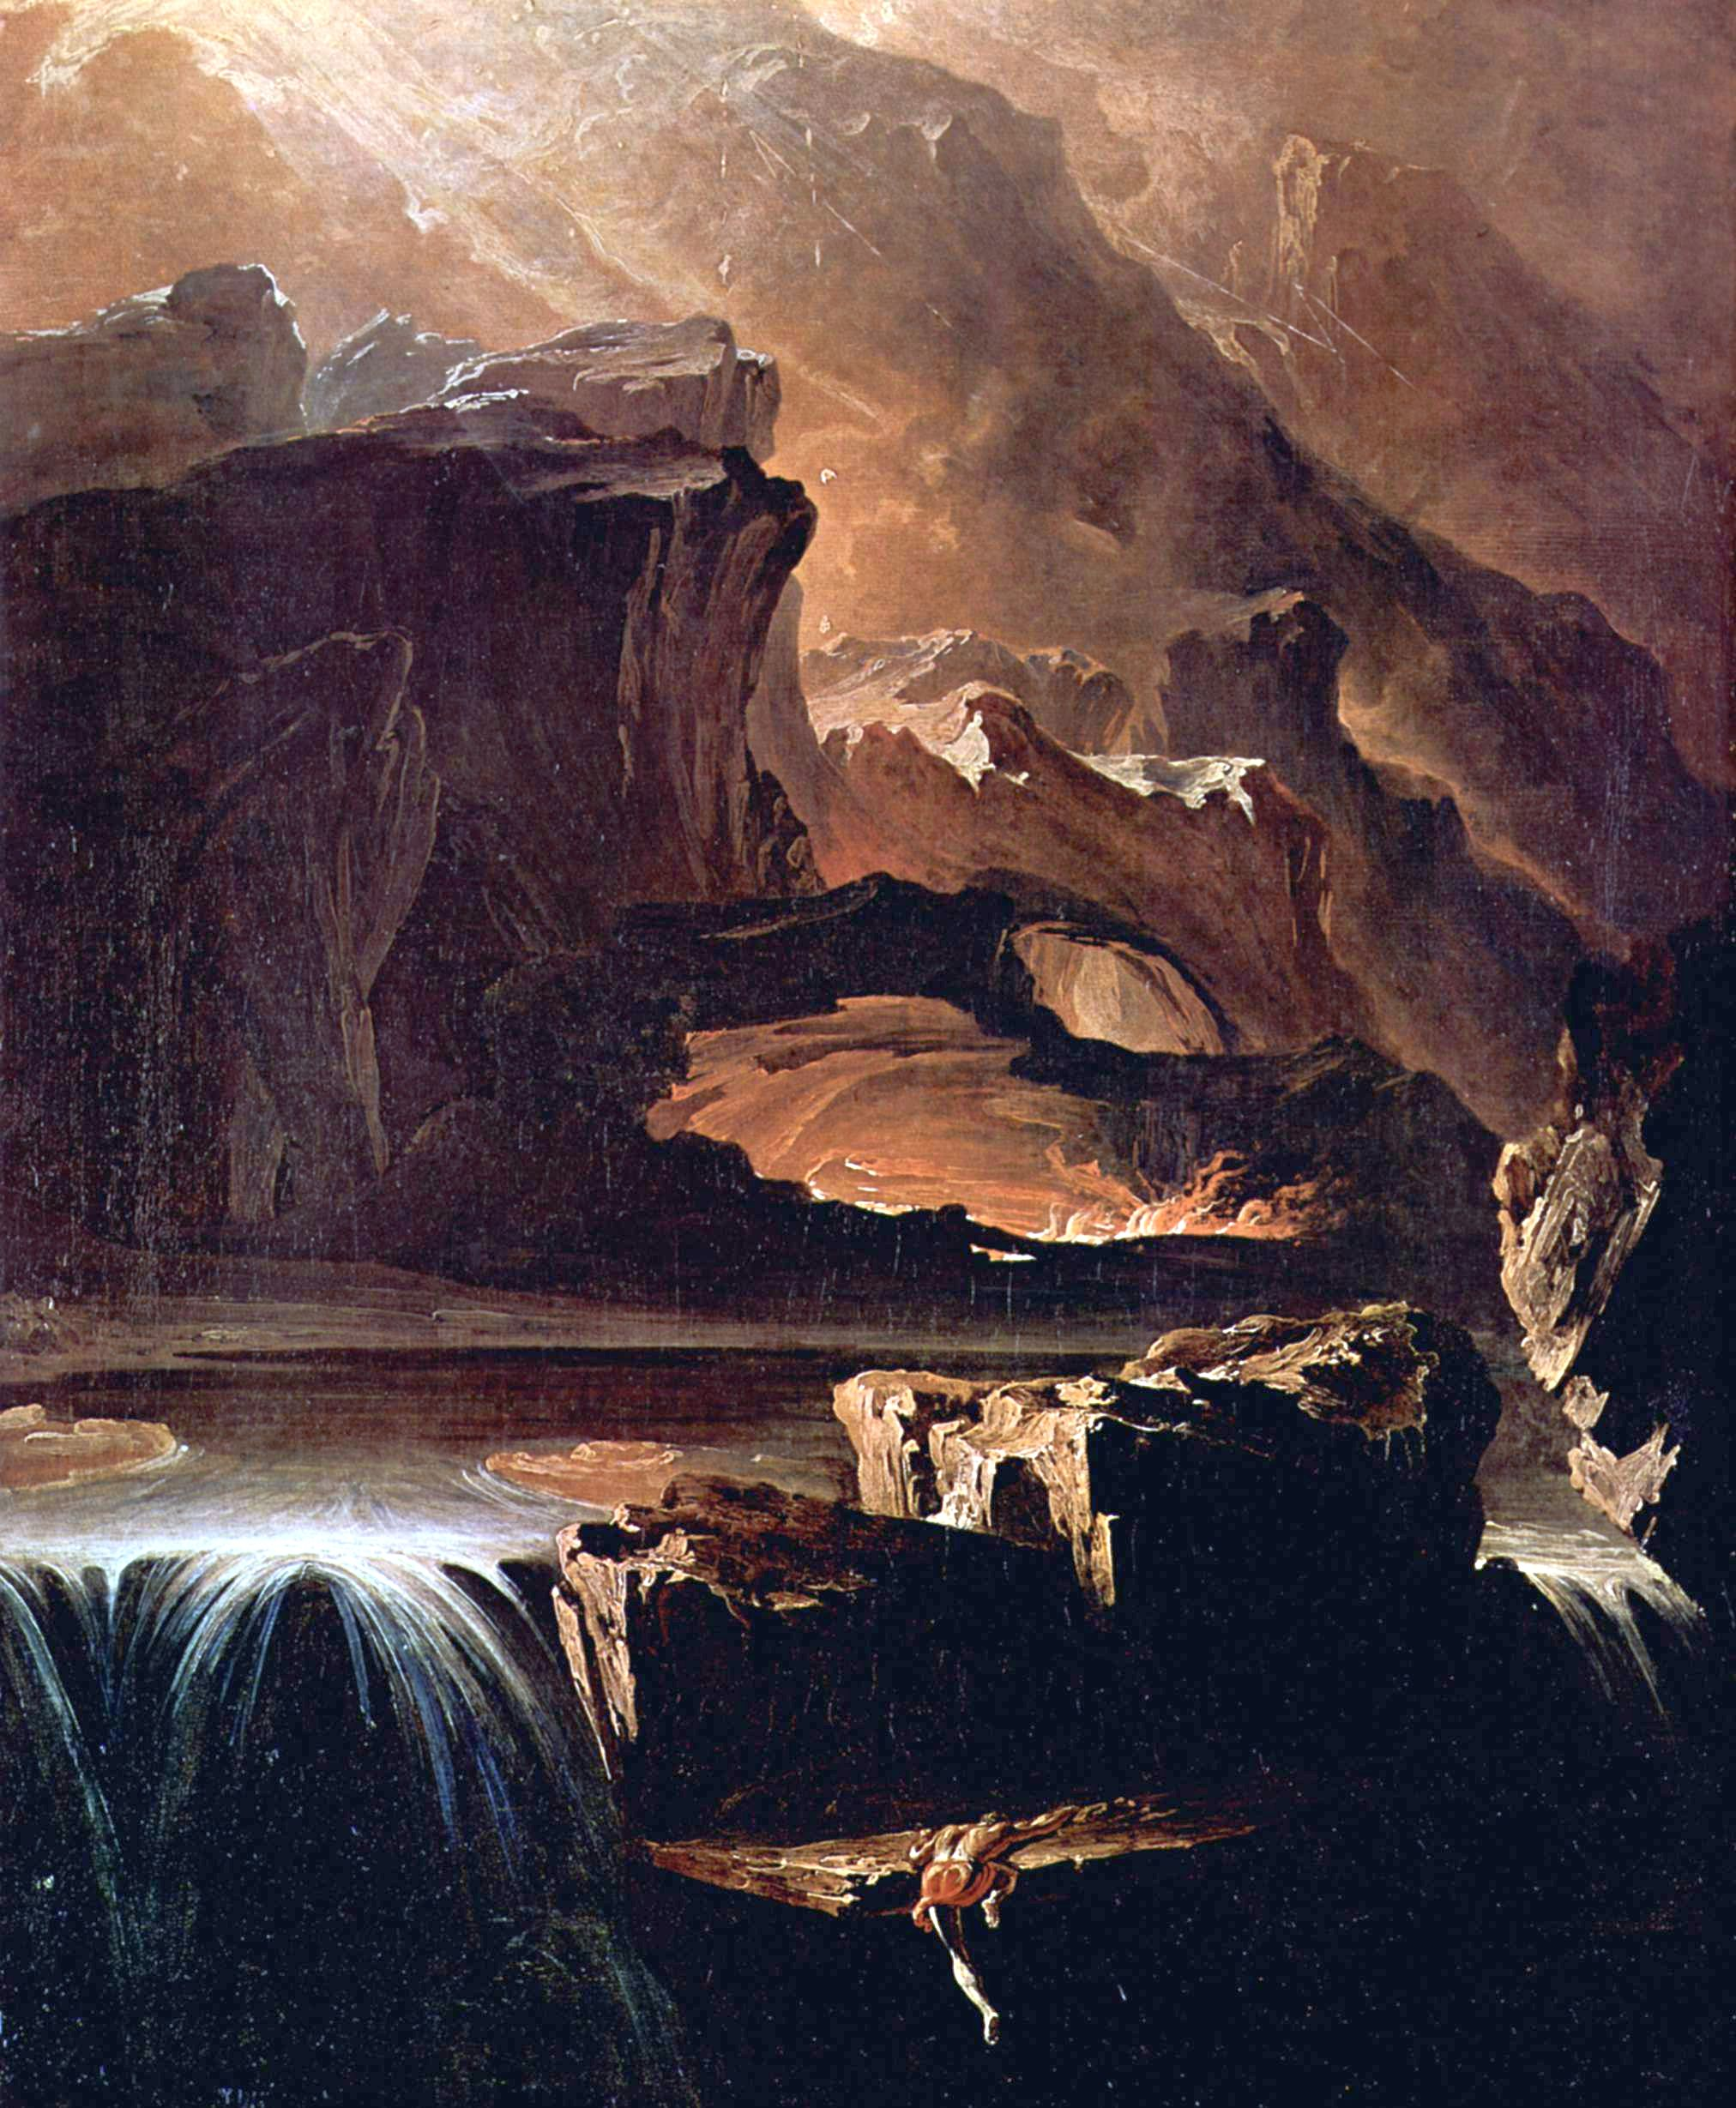 Hypochondriac Gambler - Work in progress